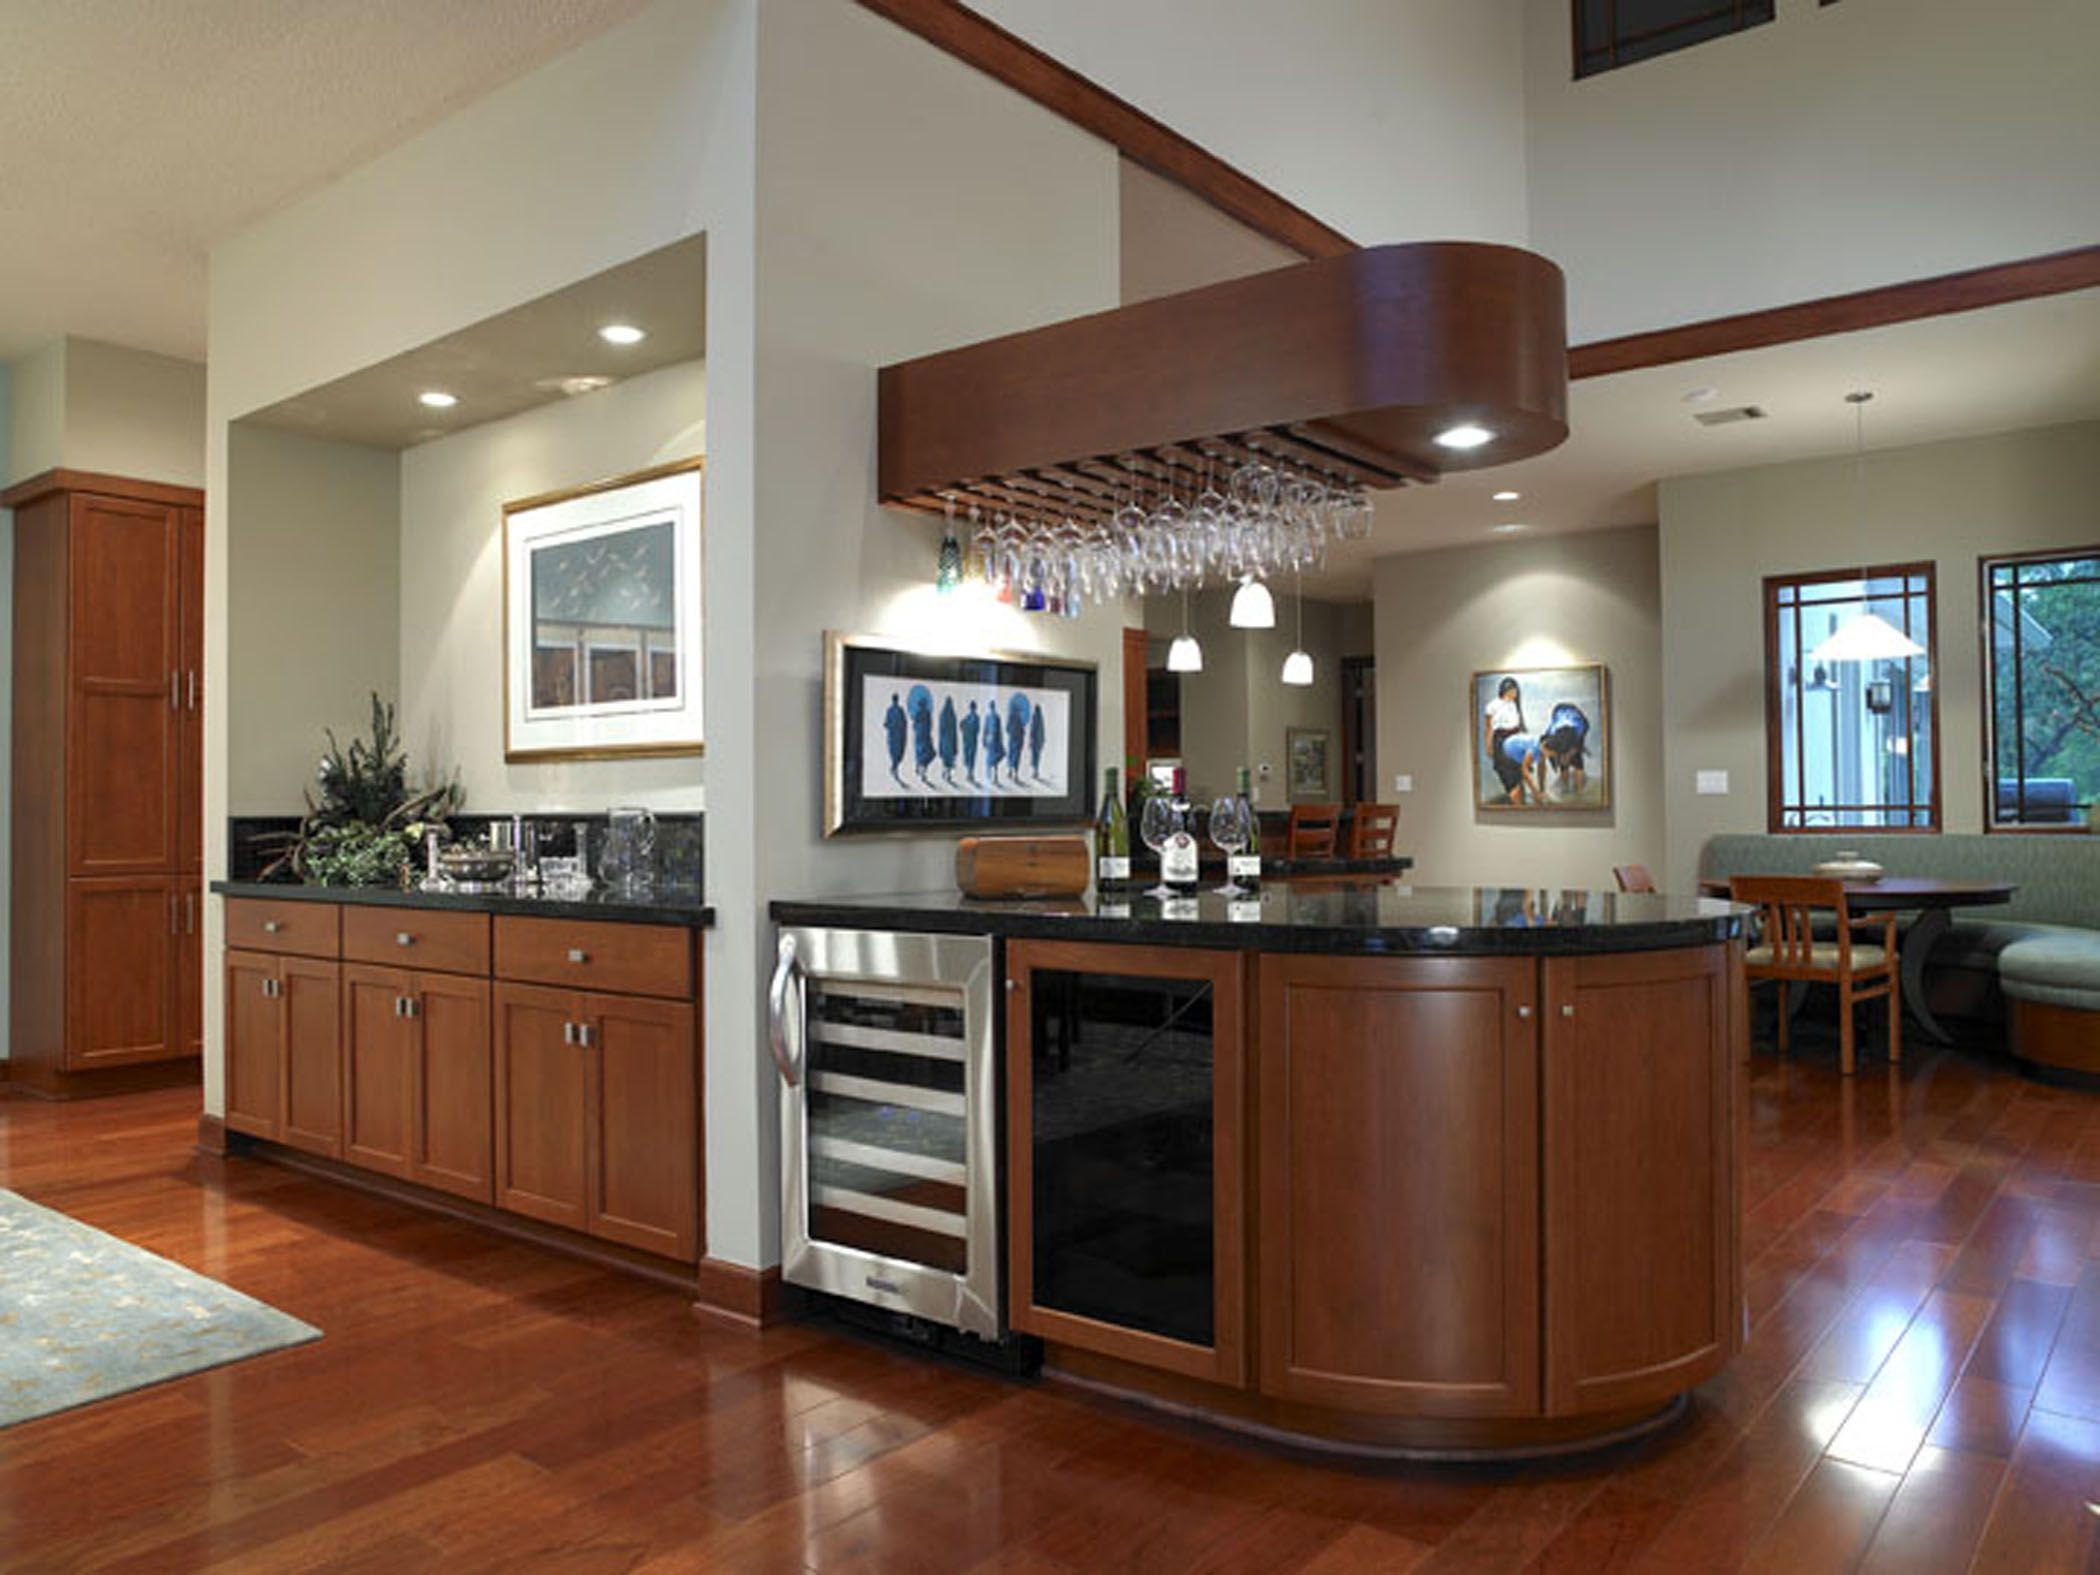 hardwood floor installation colorado springs of custom wood products bar entertain cabinets other spaces by cwp with regard to interior design colorado springs denver co 271 9669